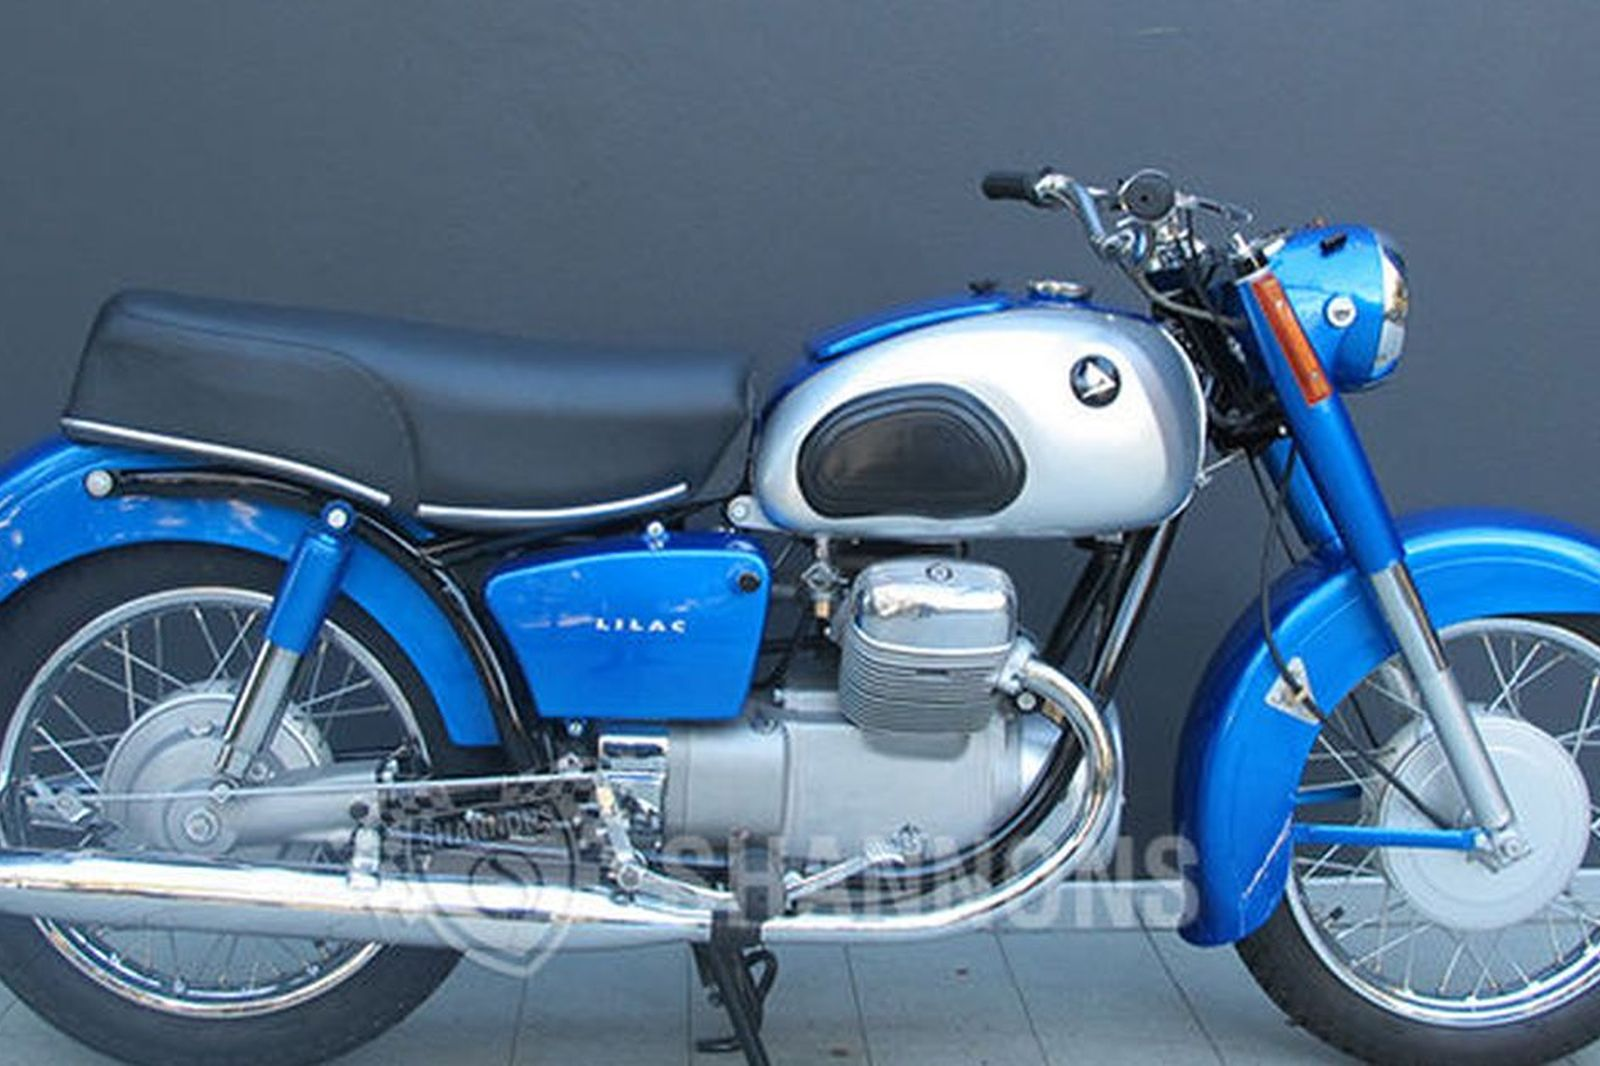 Sold marusho lilac 250cc motorcycle auctions lot v for Motor vehicle open on saturday